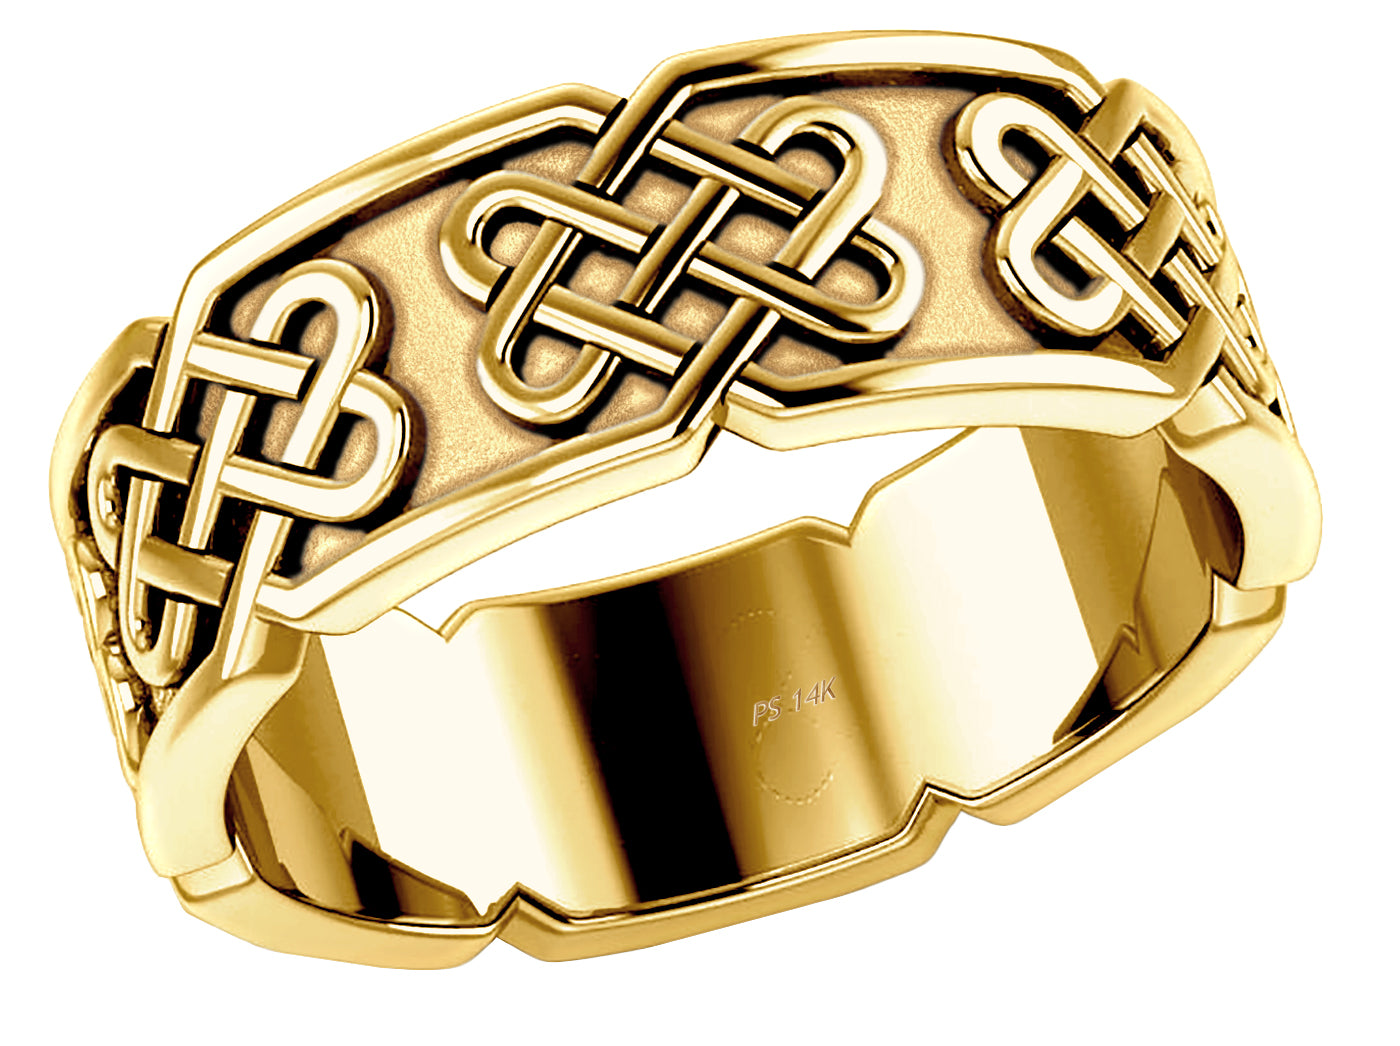 Gold Irish Love Knot Ring embossed with Celtic Knot panels